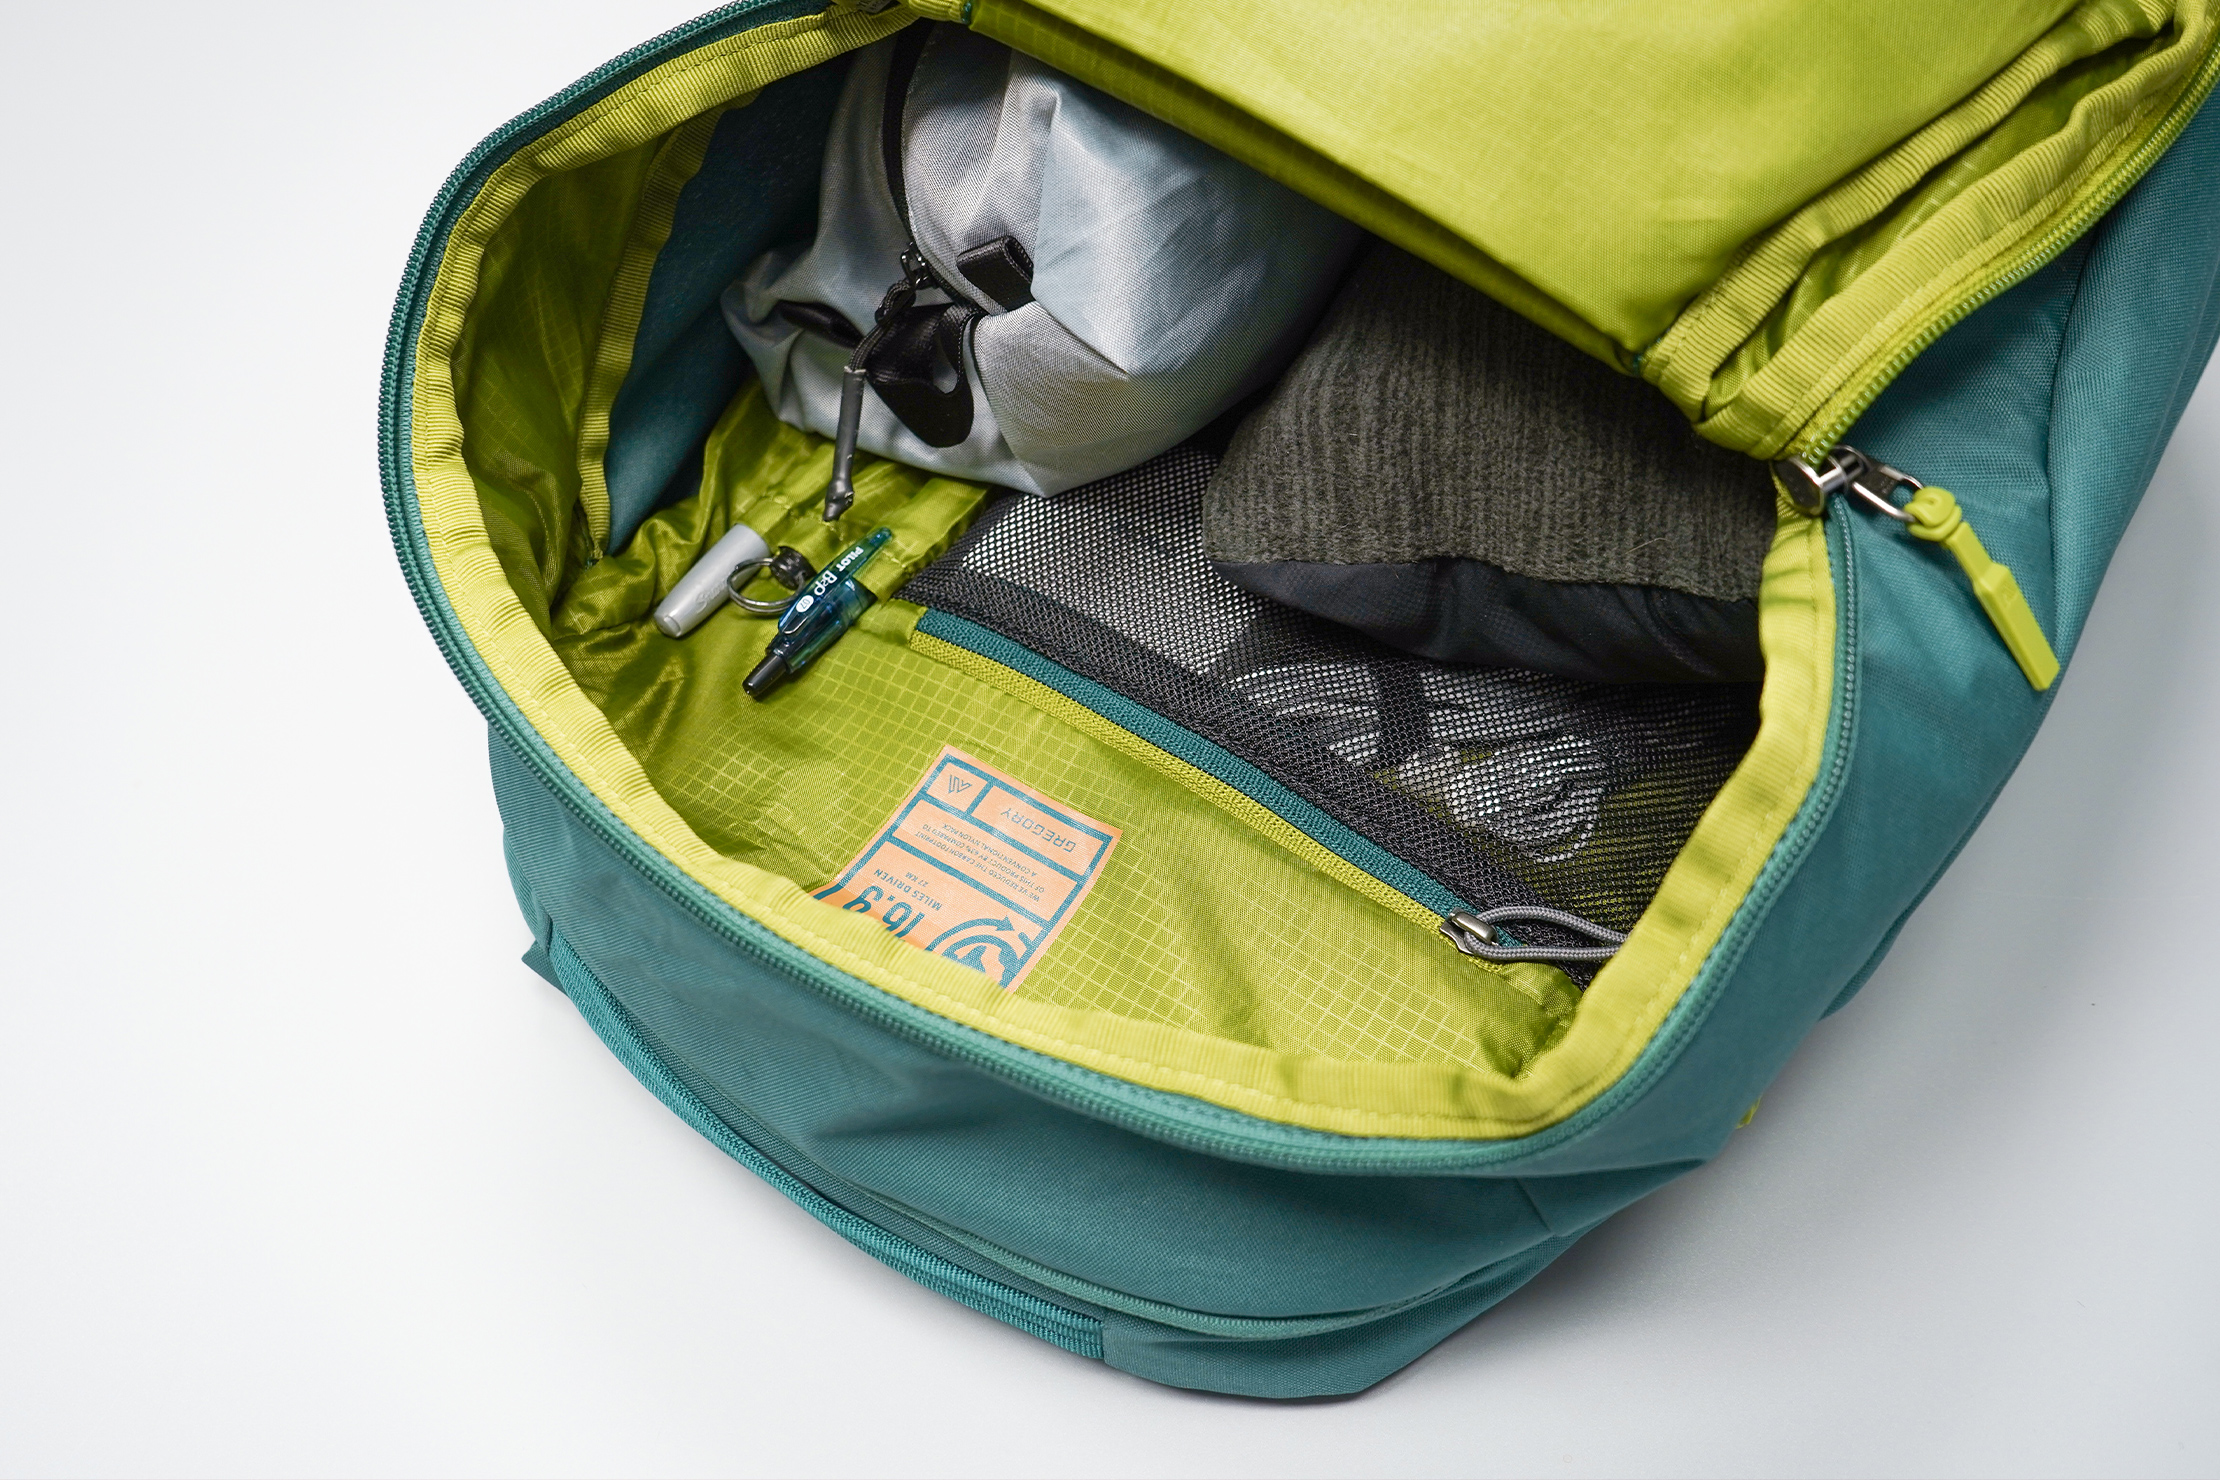 Gregory Resin 26 Backpack Main Compartment